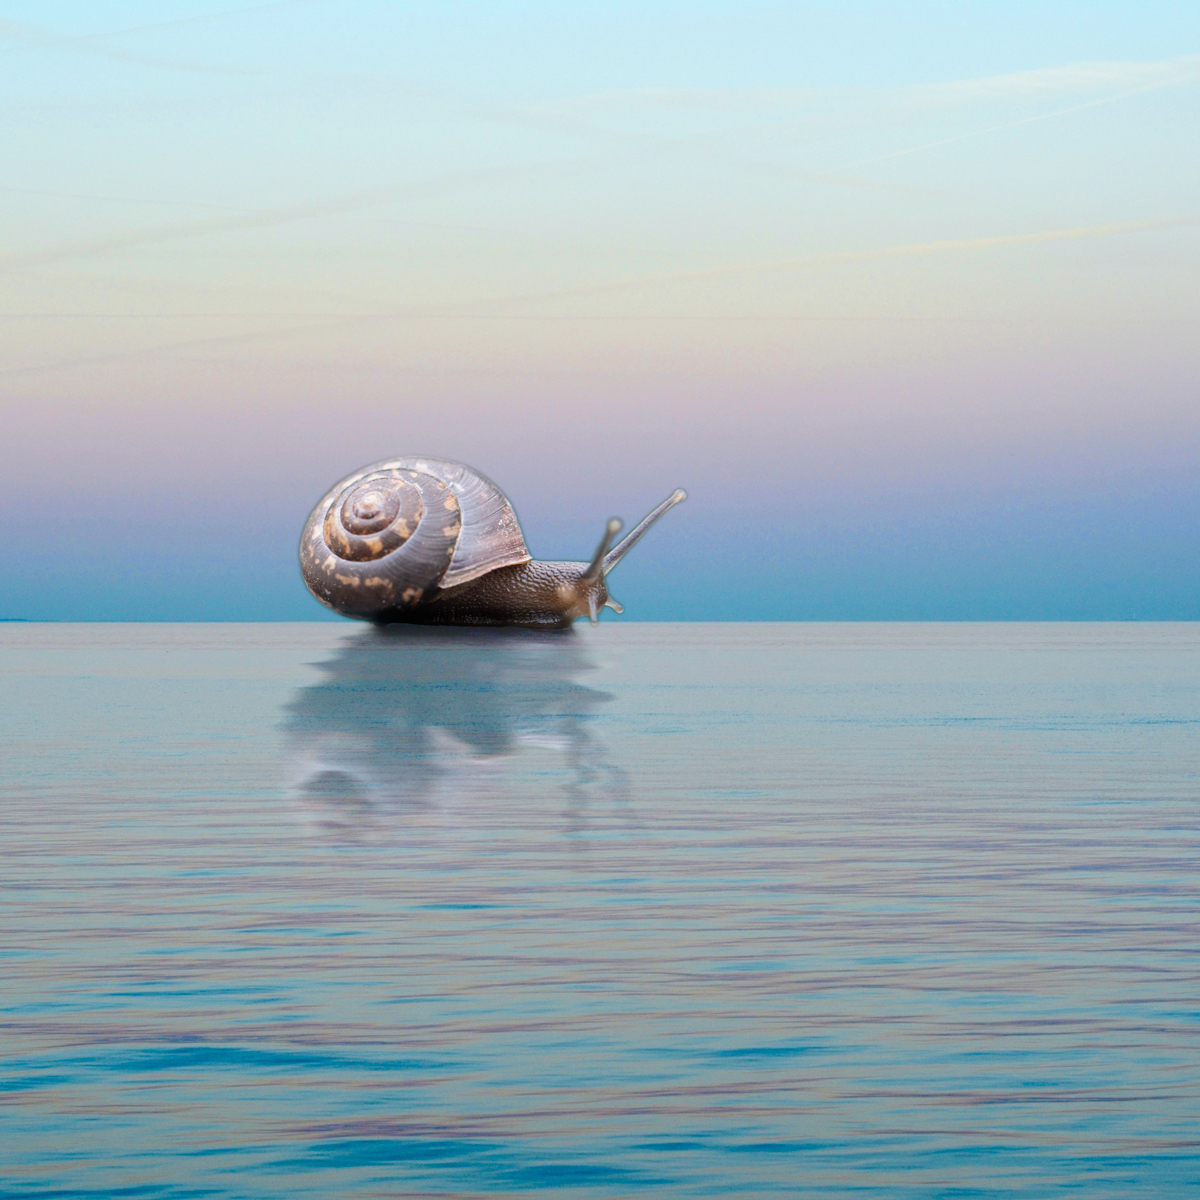 Snail crossing the ocean horizon